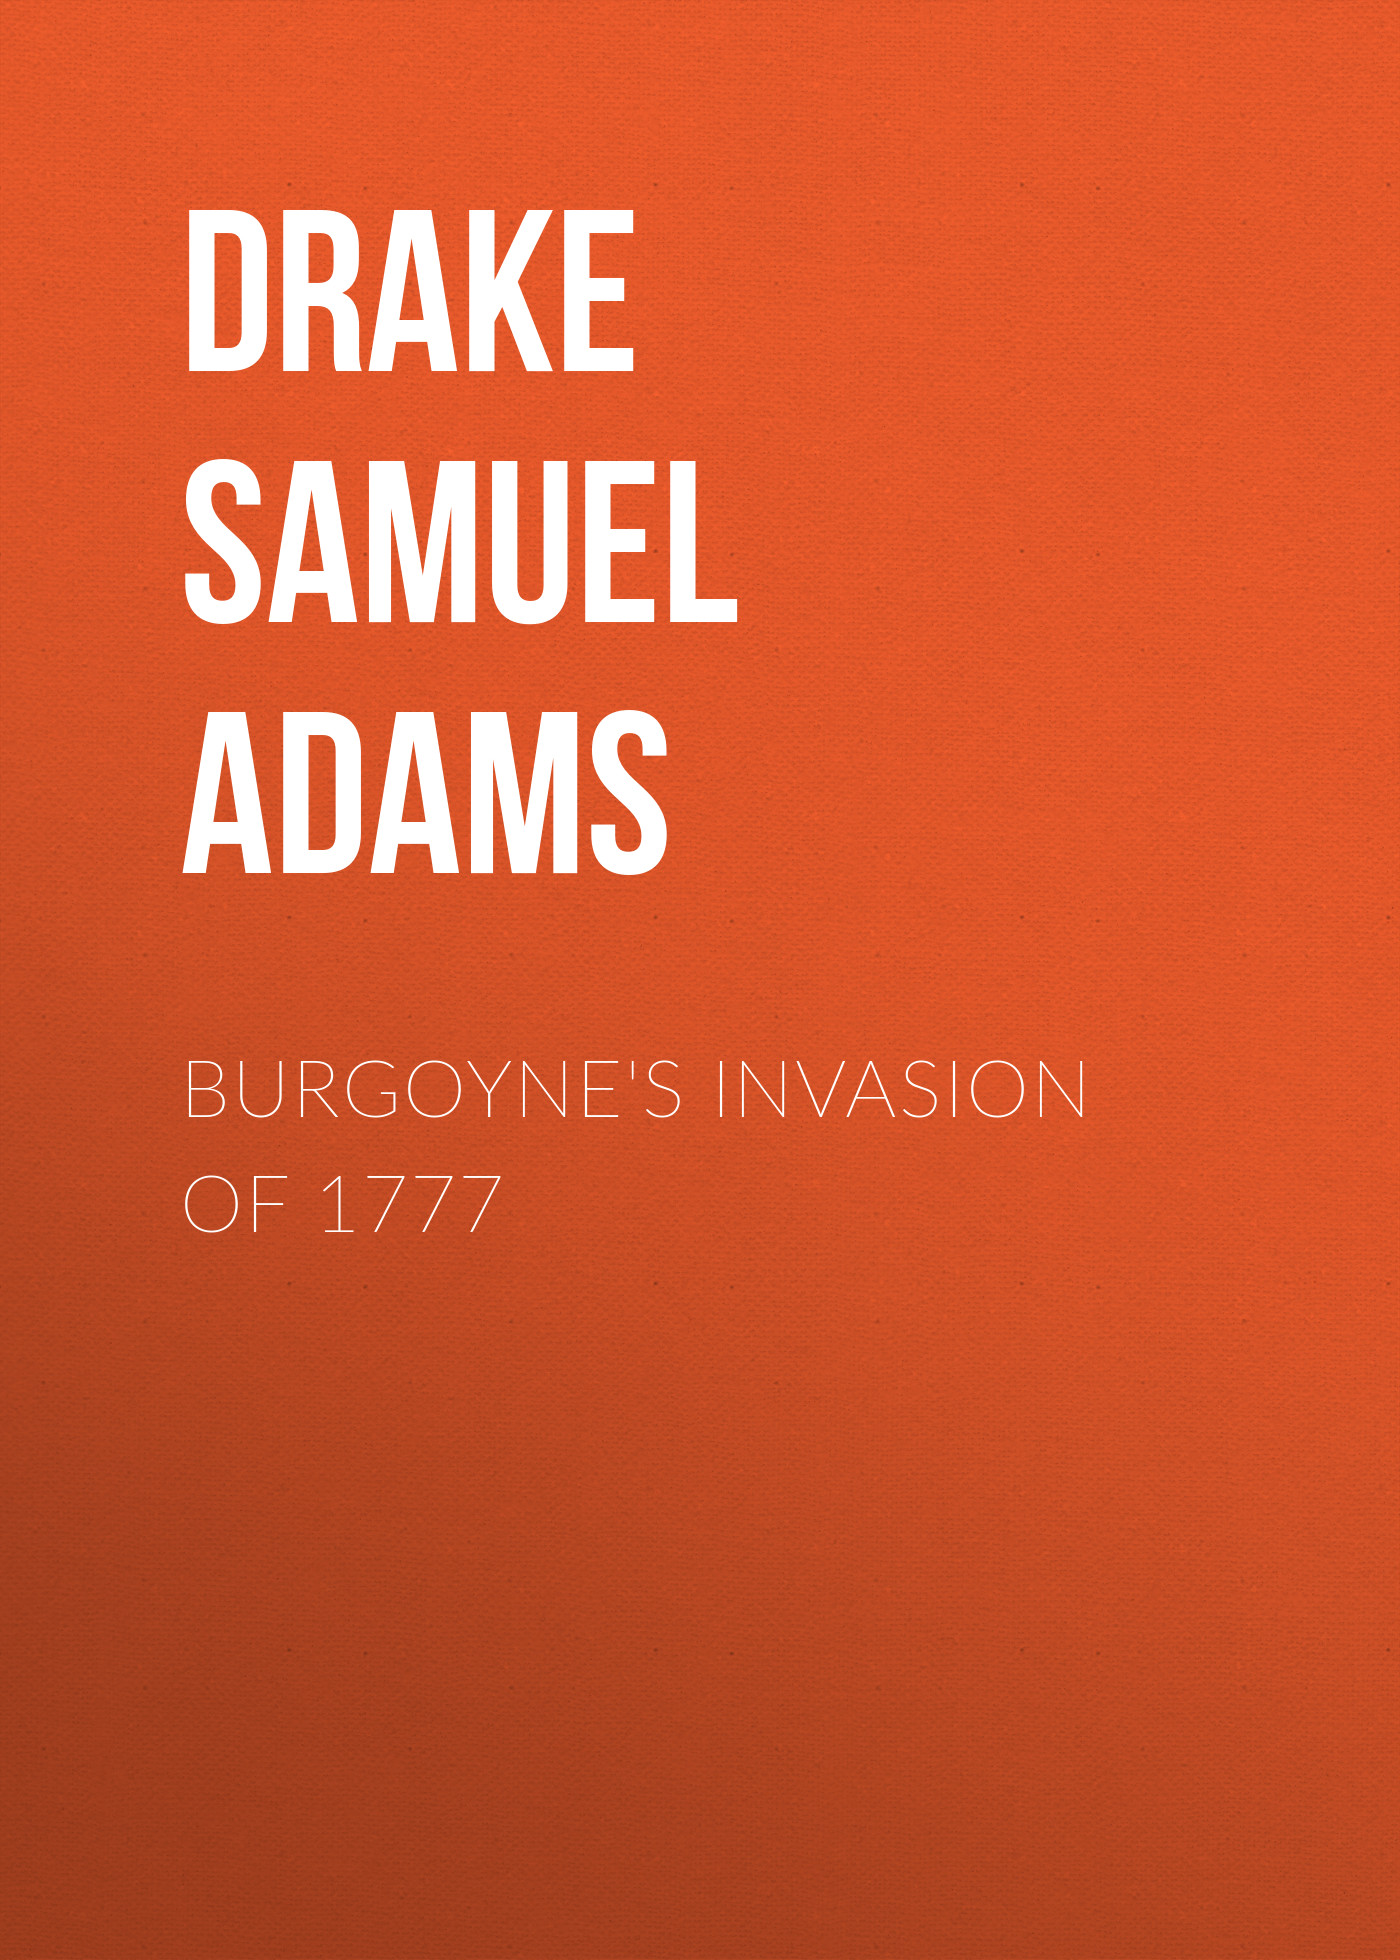 цена на Drake Samuel Adams Burgoyne's Invasion of 1777